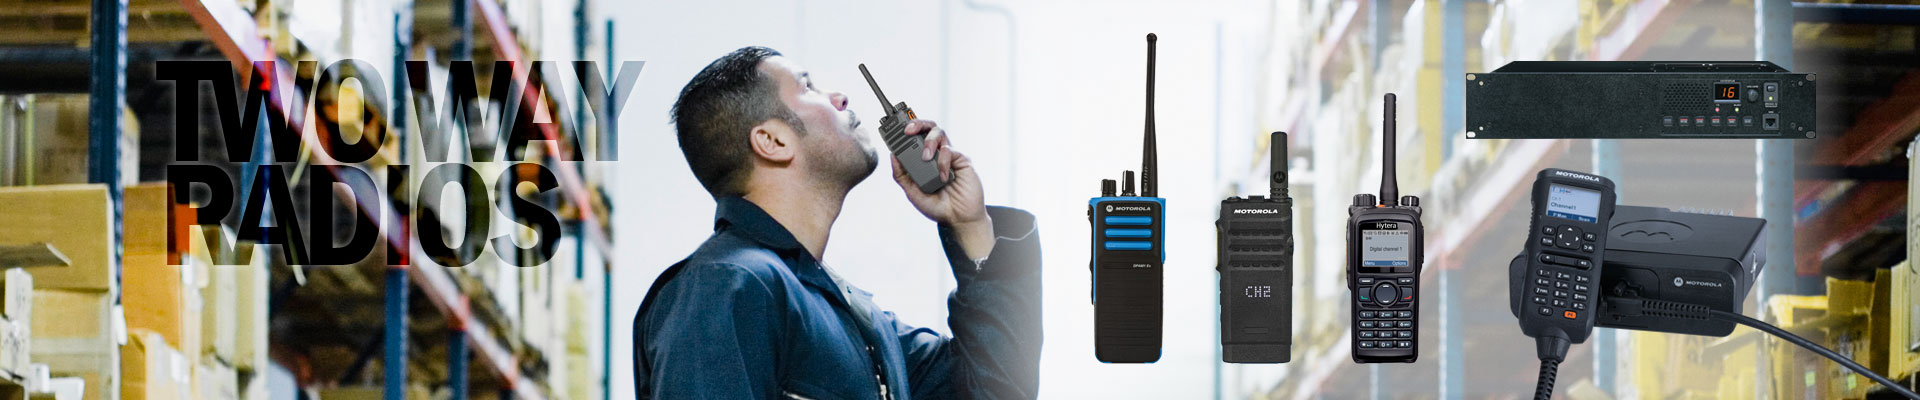 Two way radios and radio systems